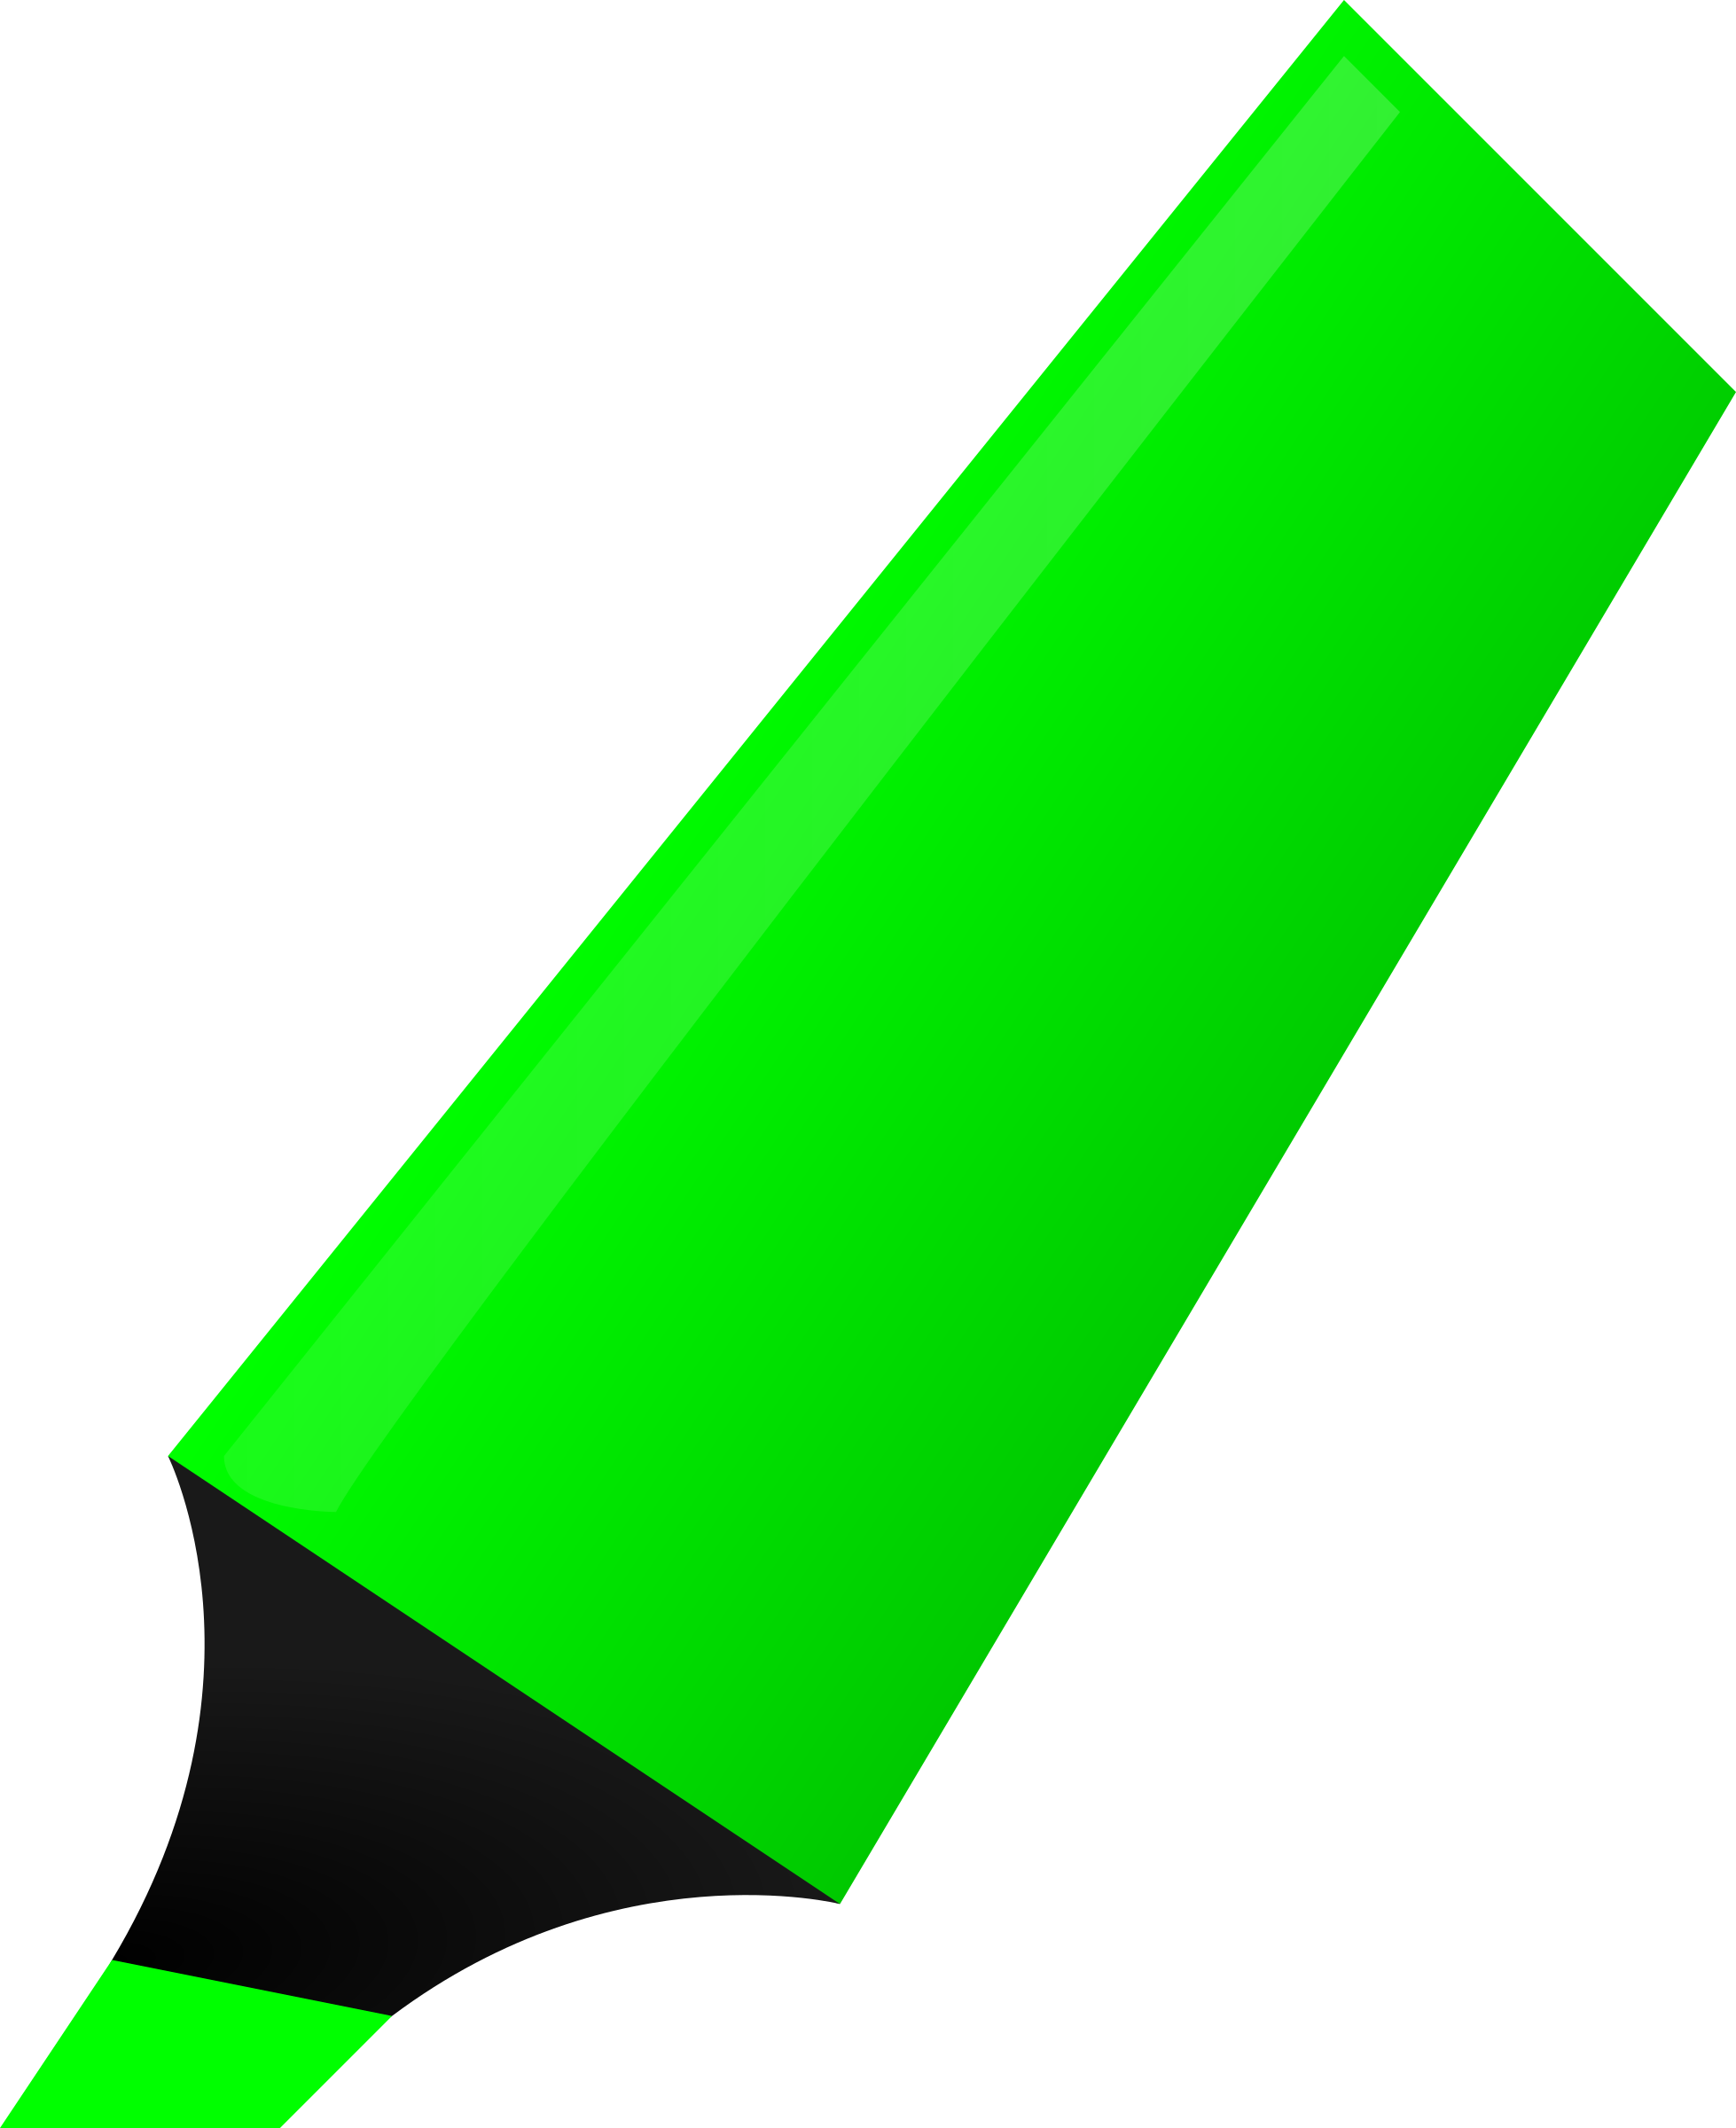 Green Highlighter by matheod